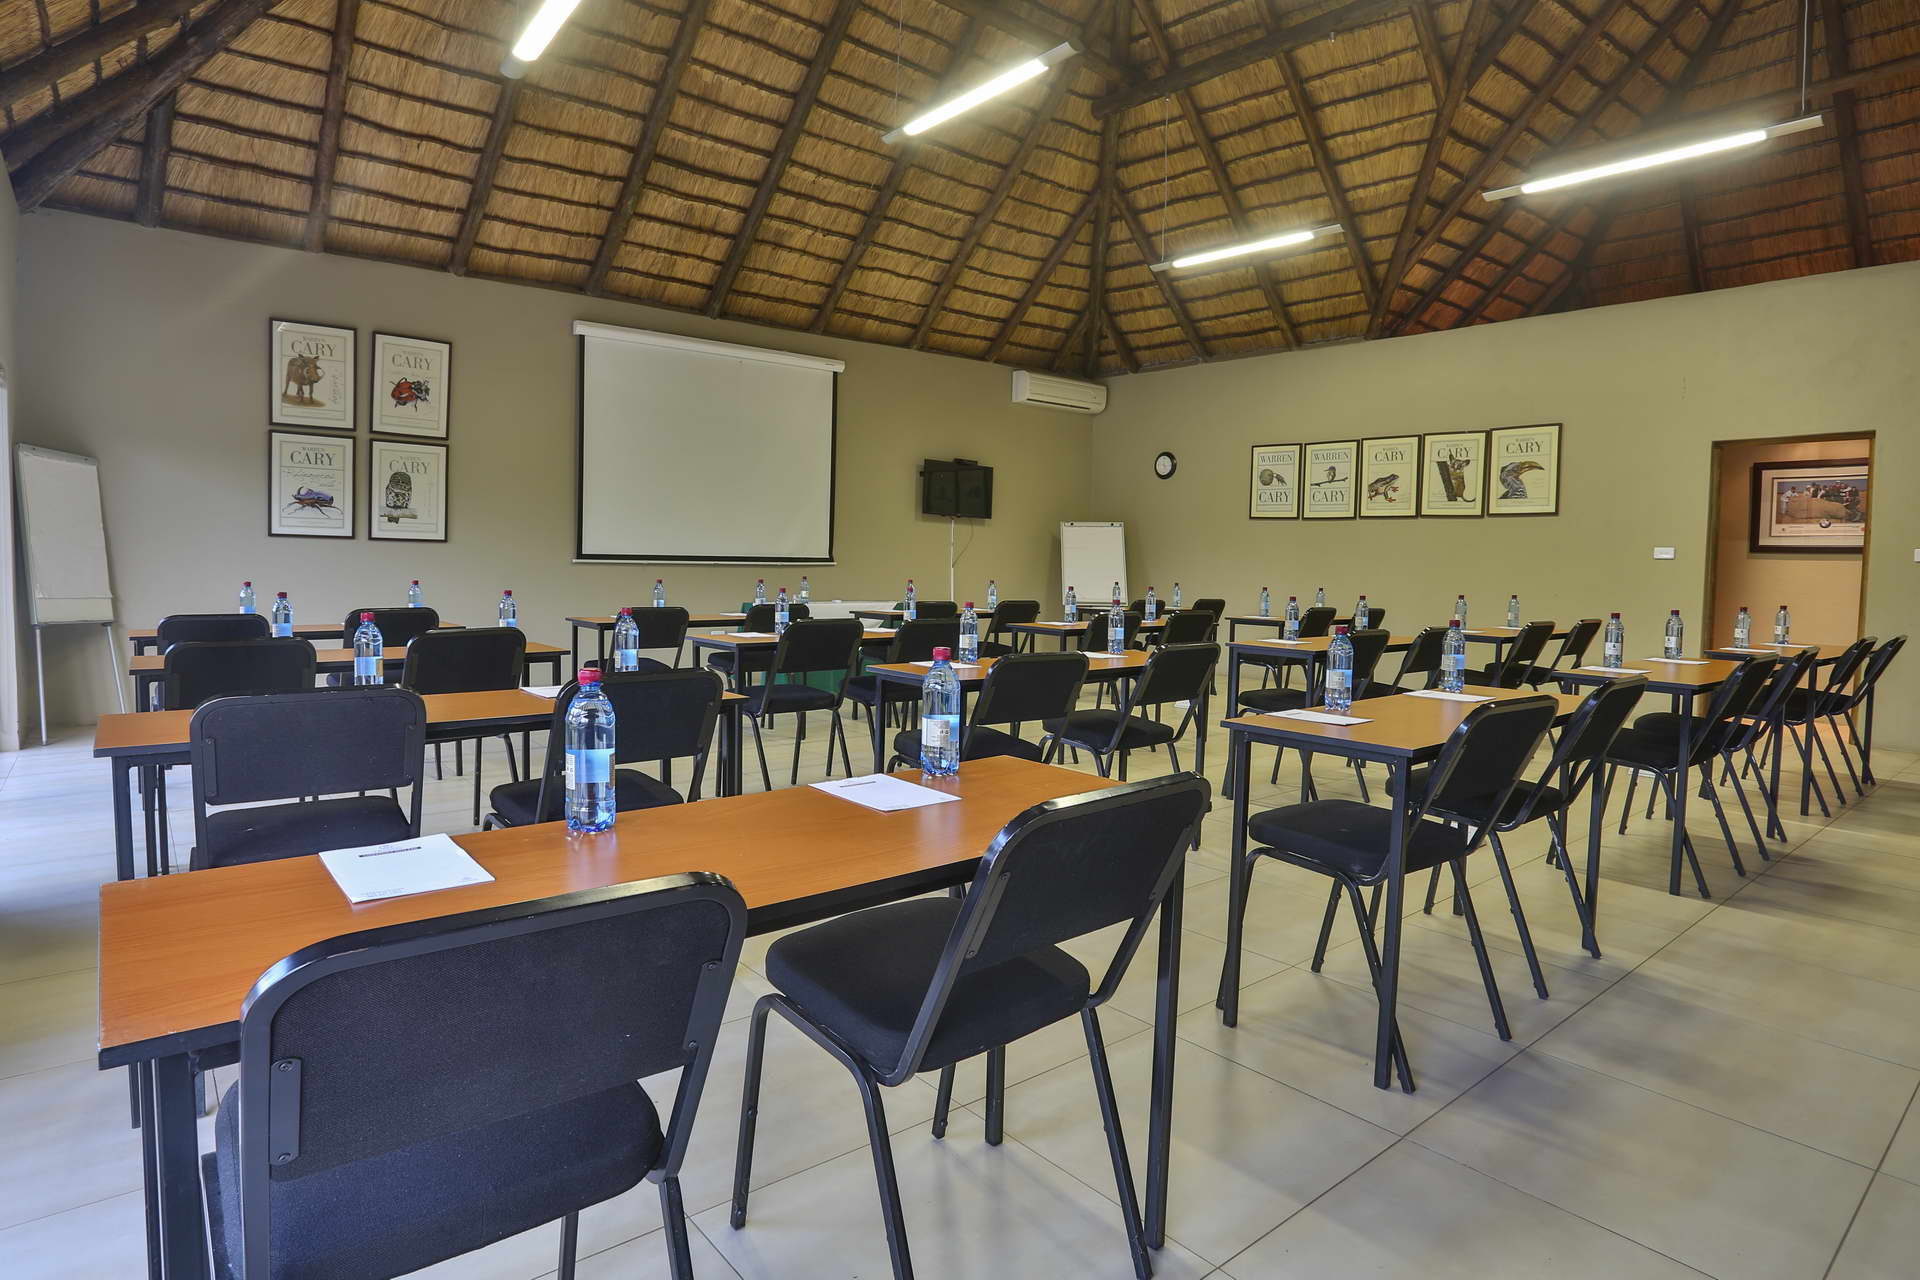 Thandeka Lodge and Spa conference centre in Bela Bela is the ideal Gauteng venue and offers game lodge accommodation, spa treatments and a kosher restaurant